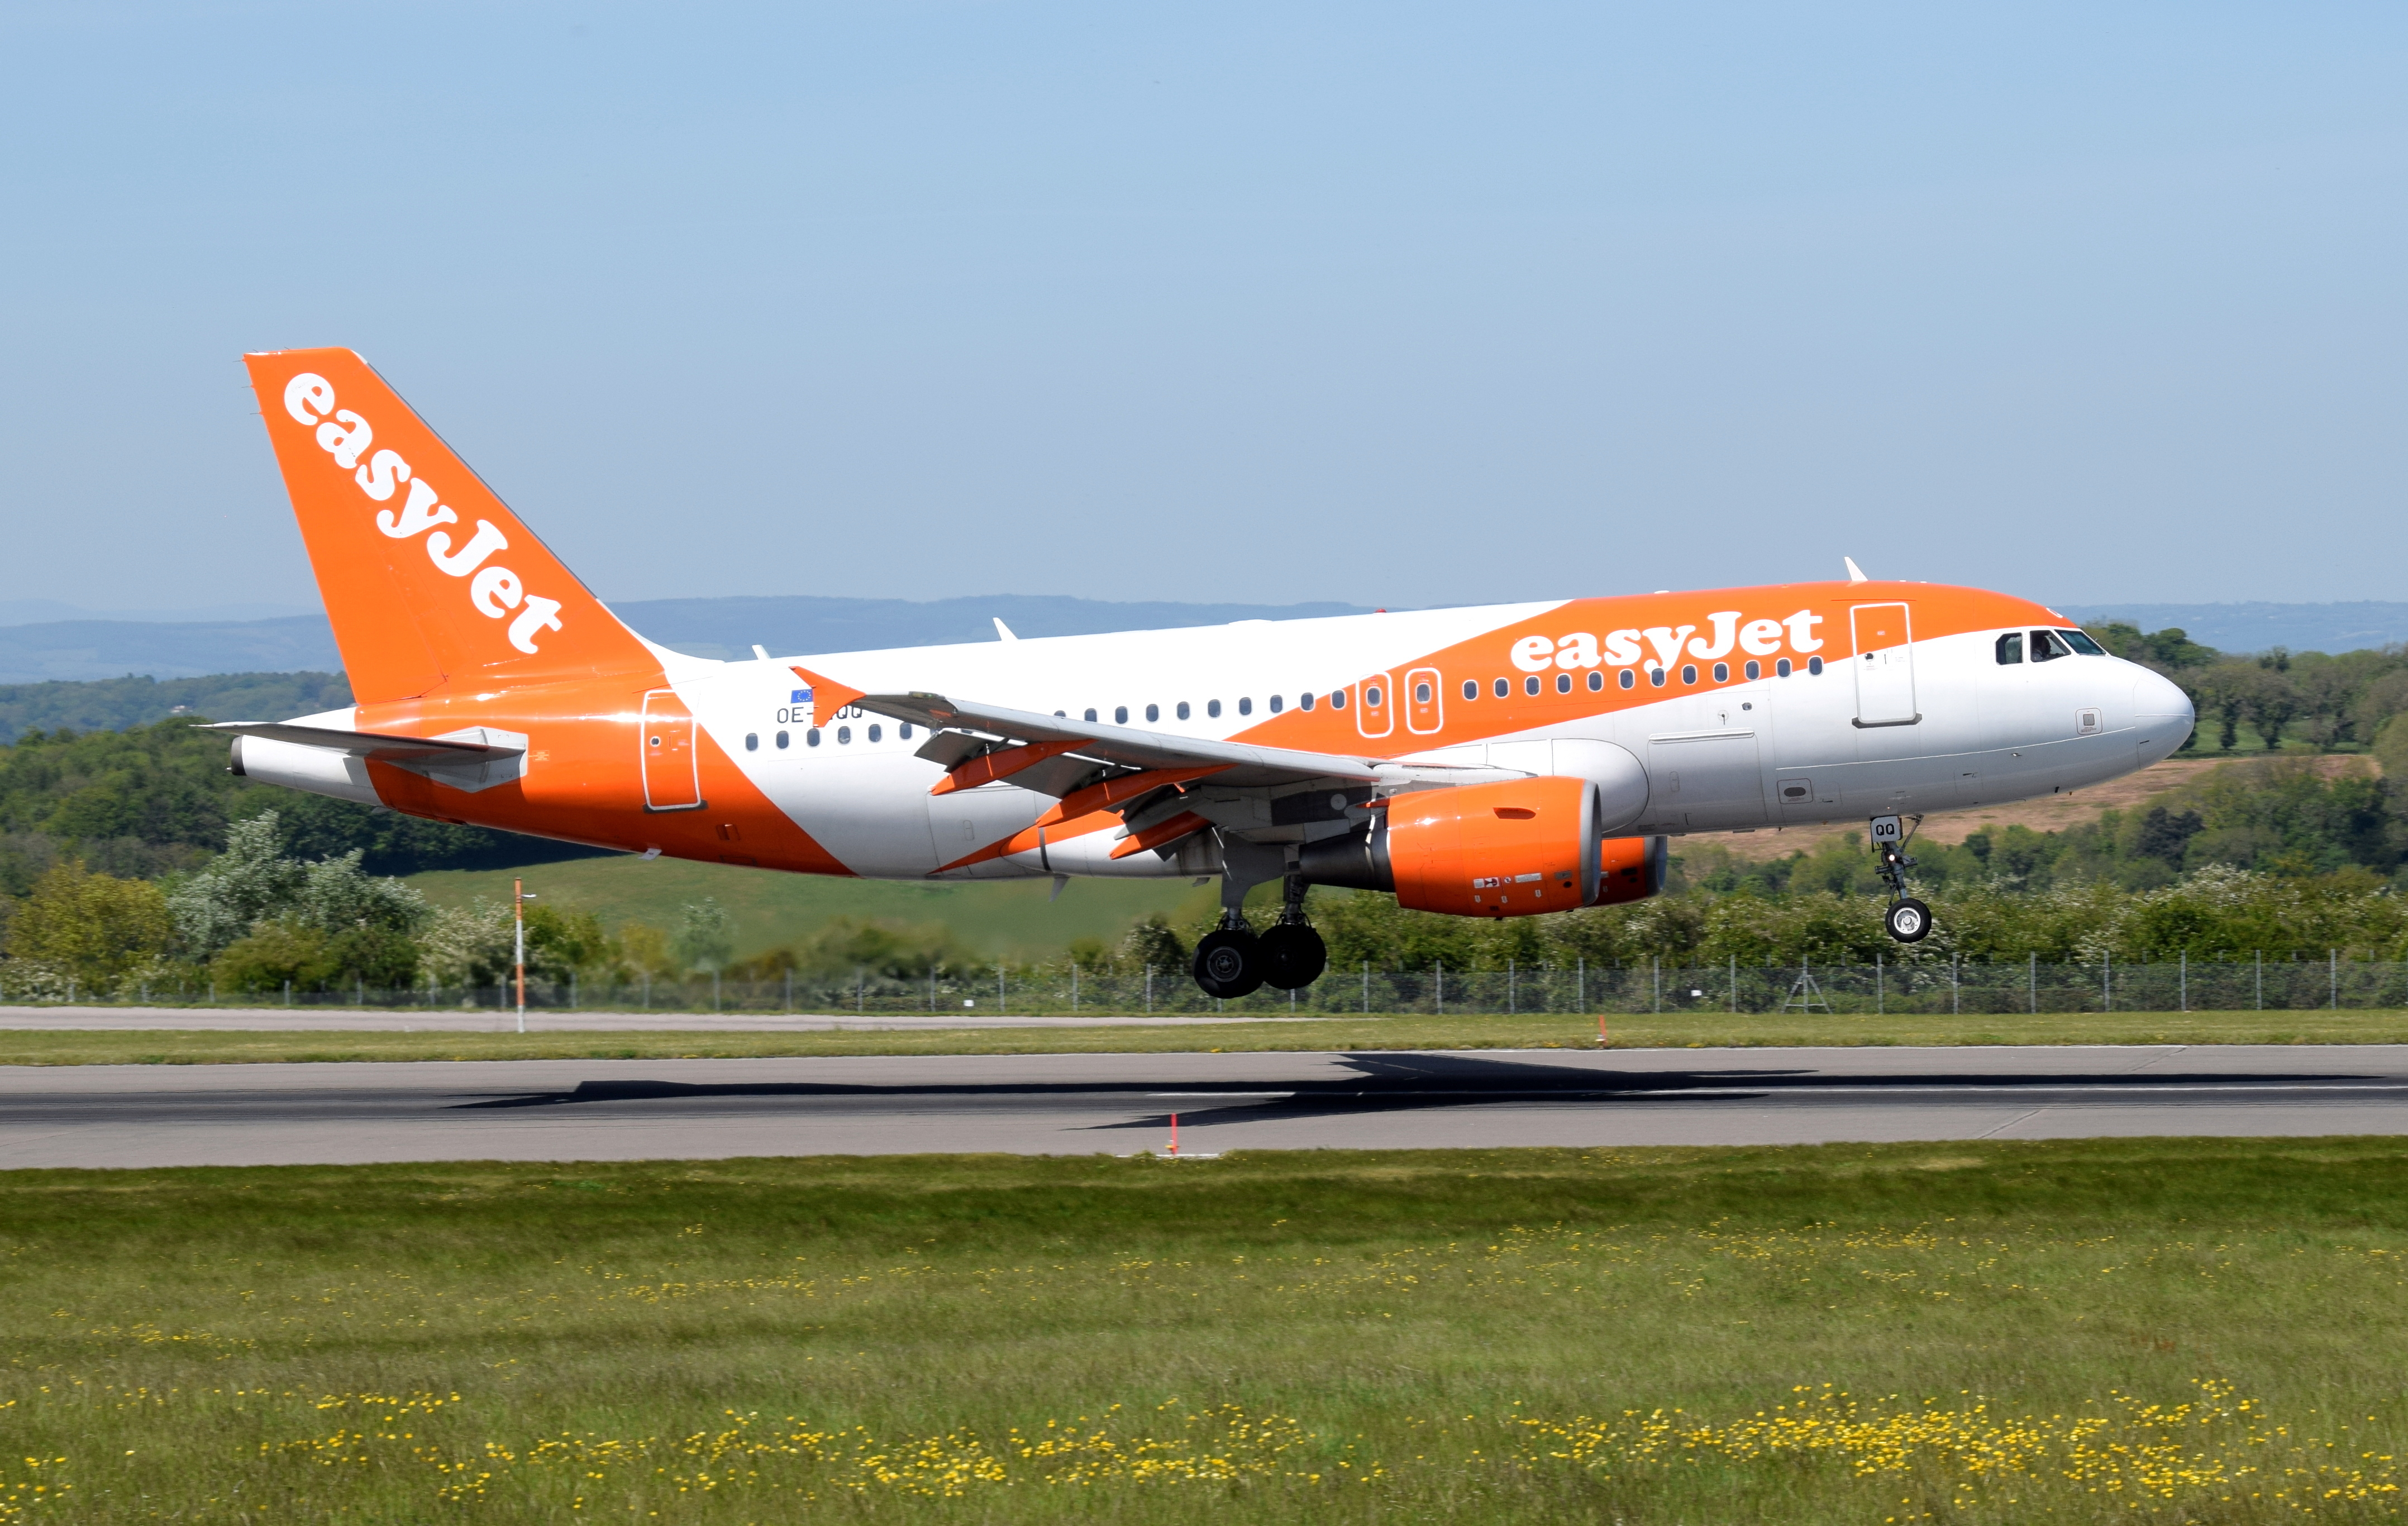 Easy Jet Airbus A319